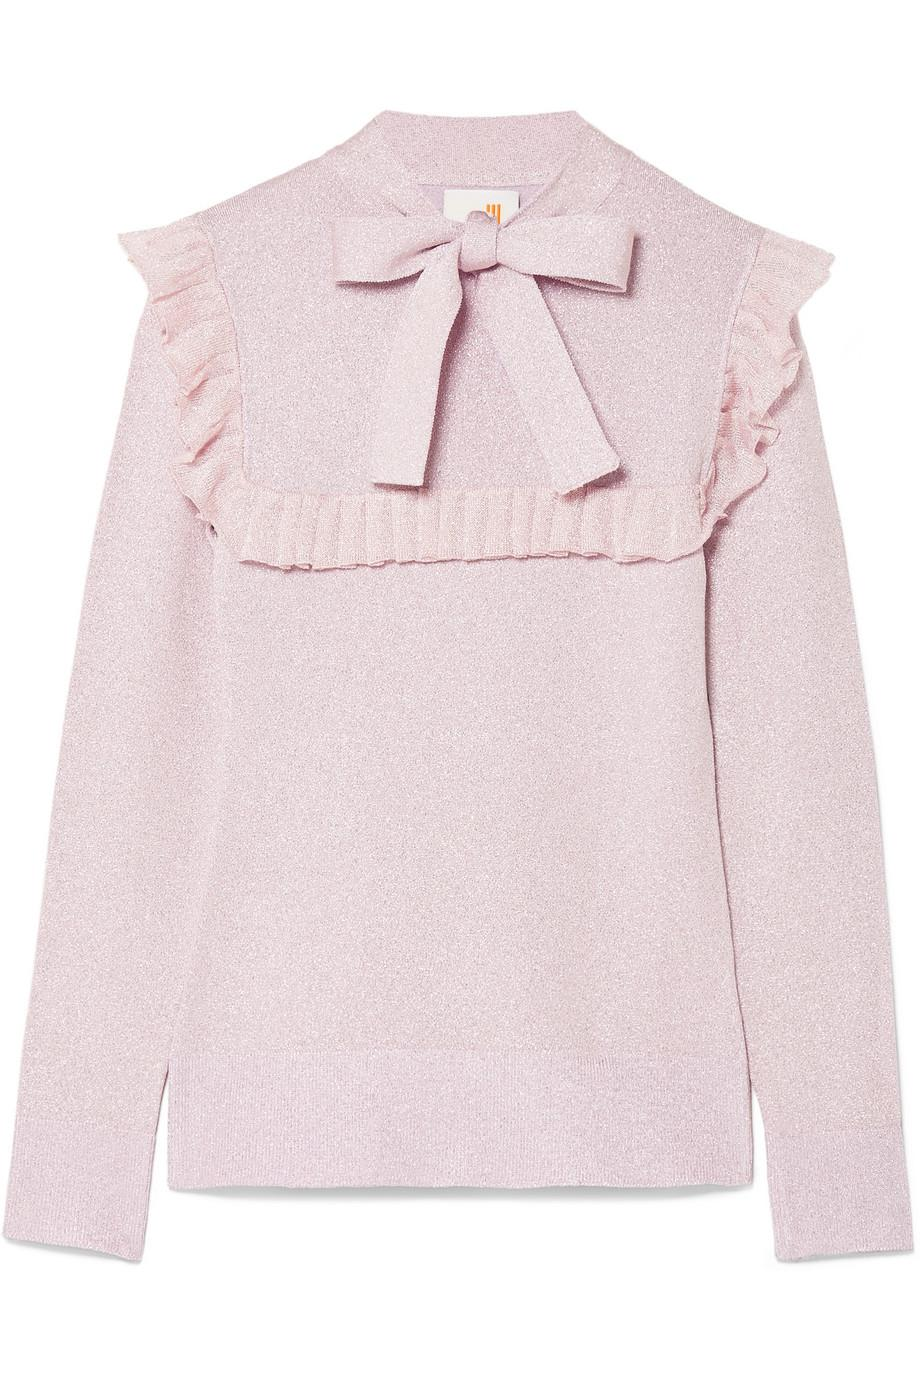 Free Shipping Best Prices Popular Online Ruffled Pussy-bow Lurex Sweater - Lilac JoosTricot Buy Online Cheap Free Shipping Best Store To Get Low Cost Online bqzTd7I